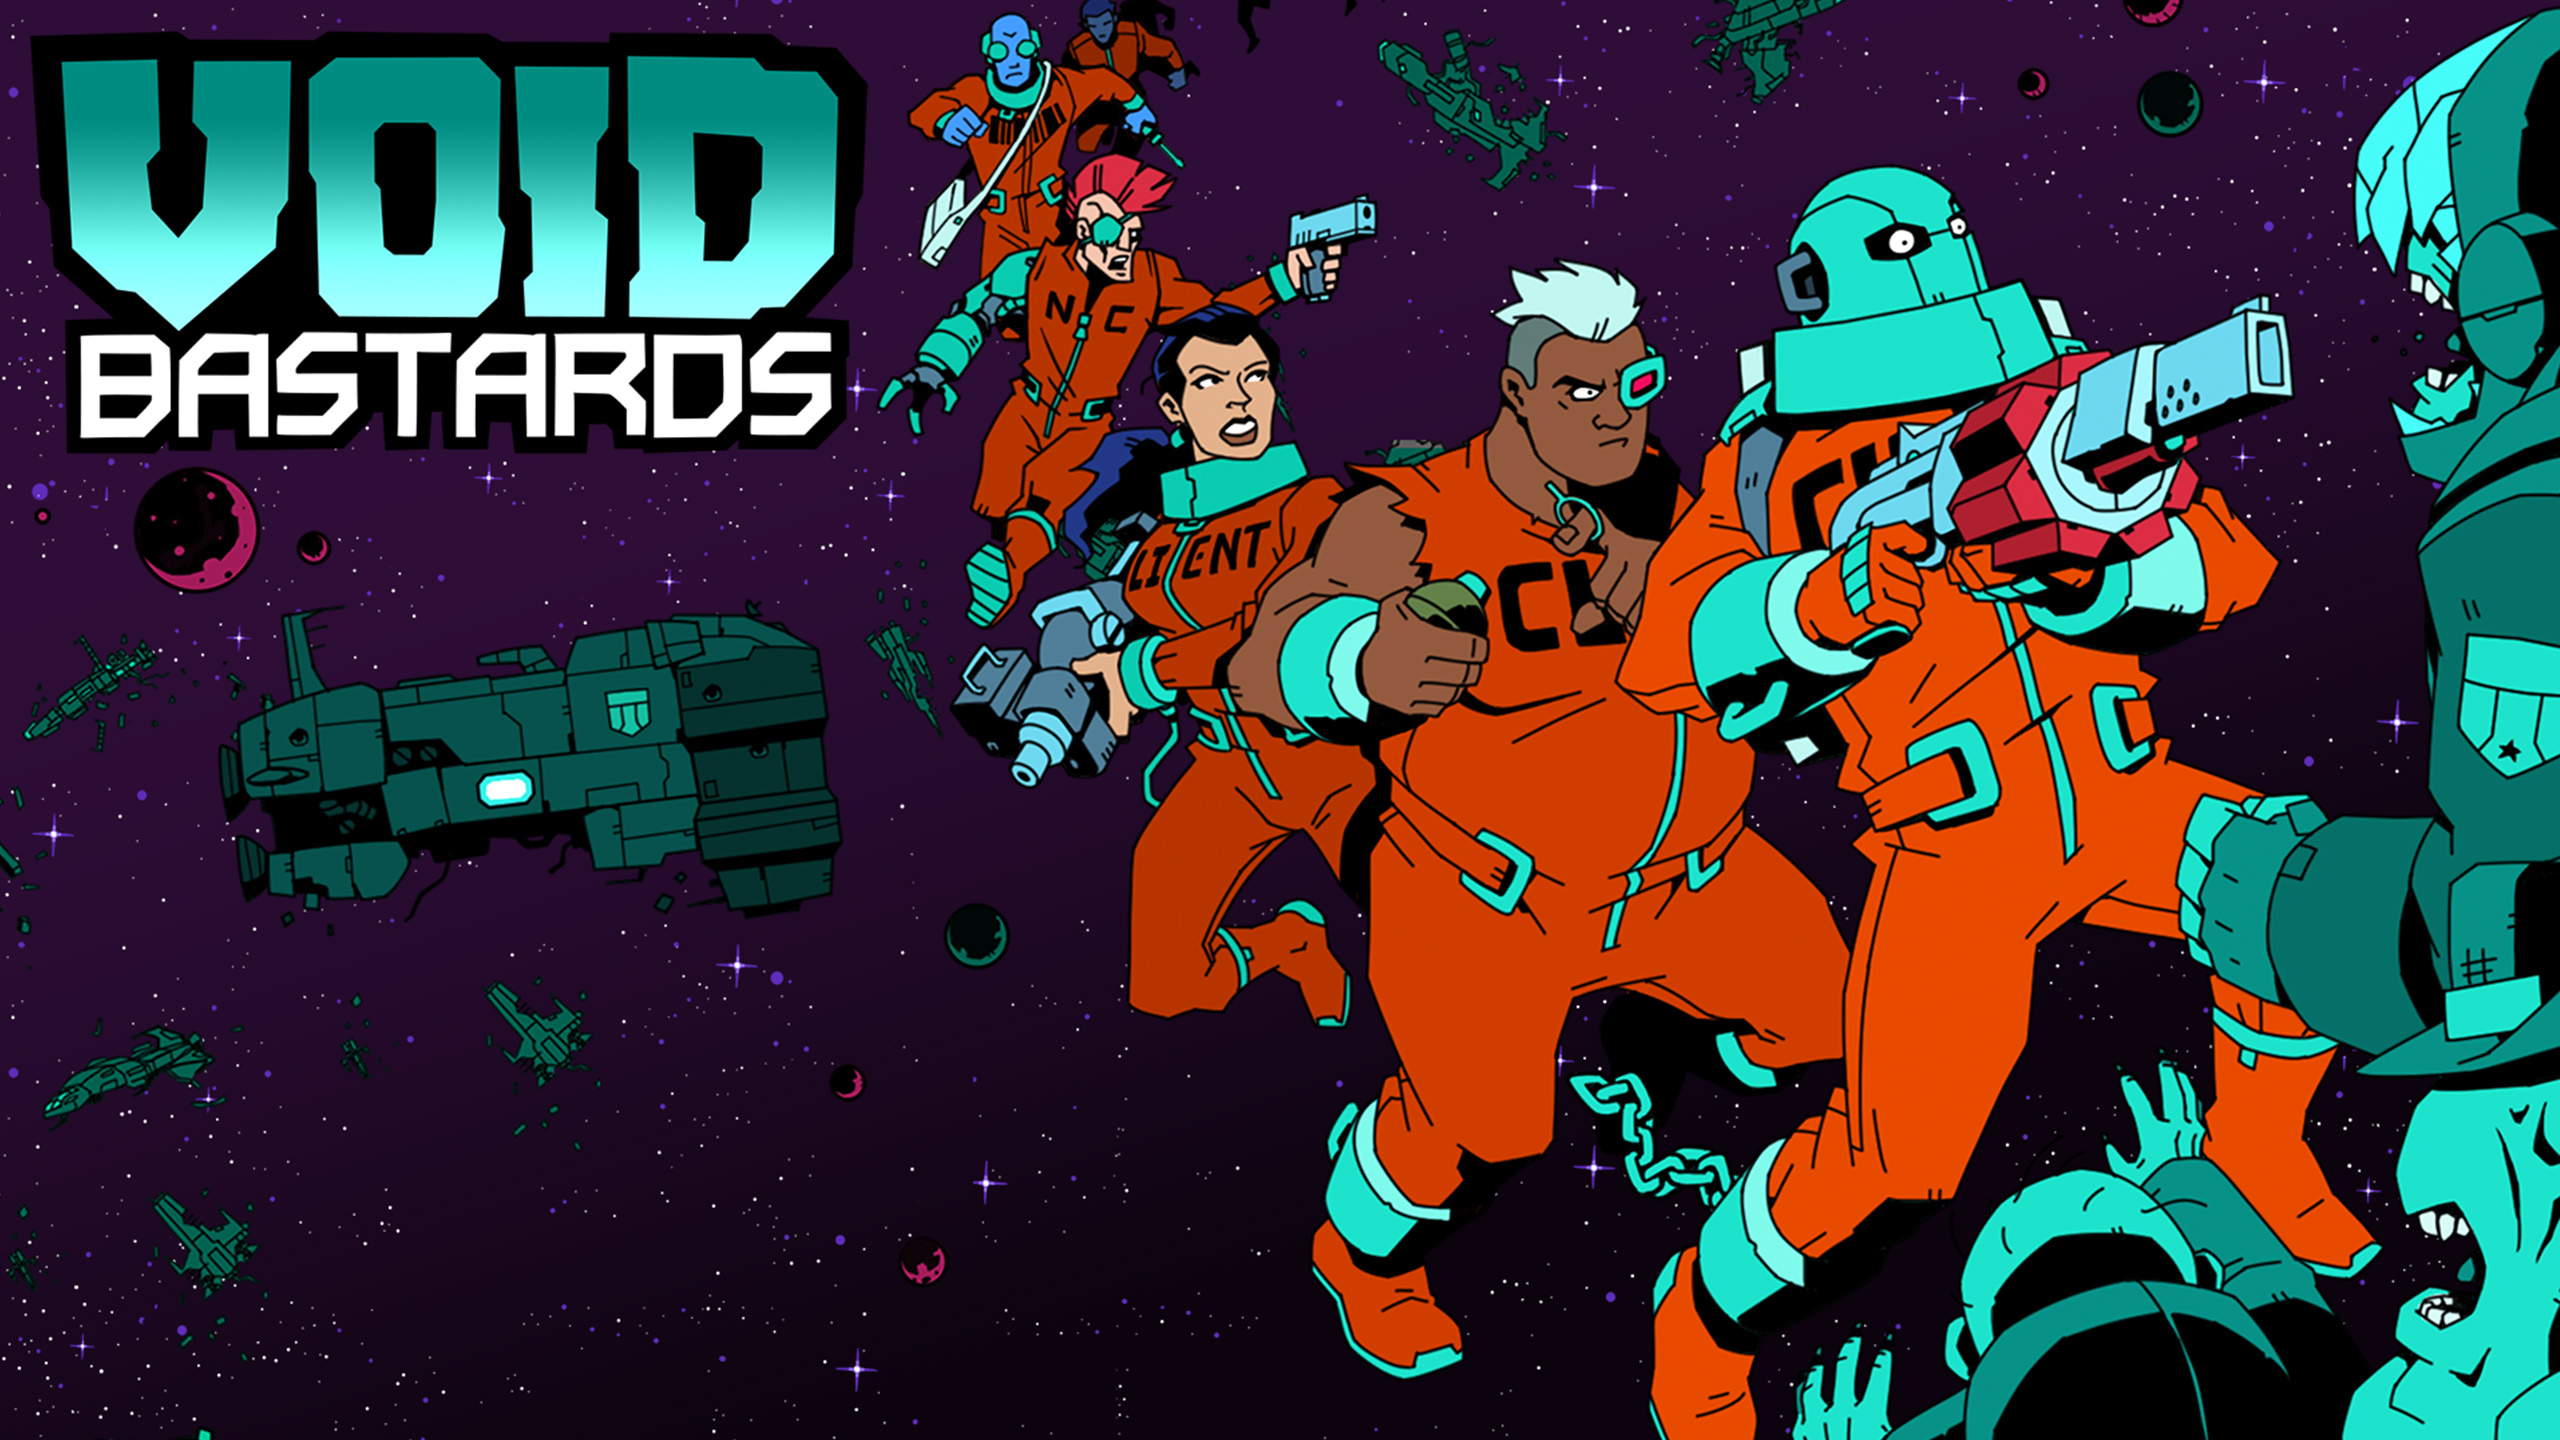 Void Bastards | Download and Buy Today - Epic Games Store